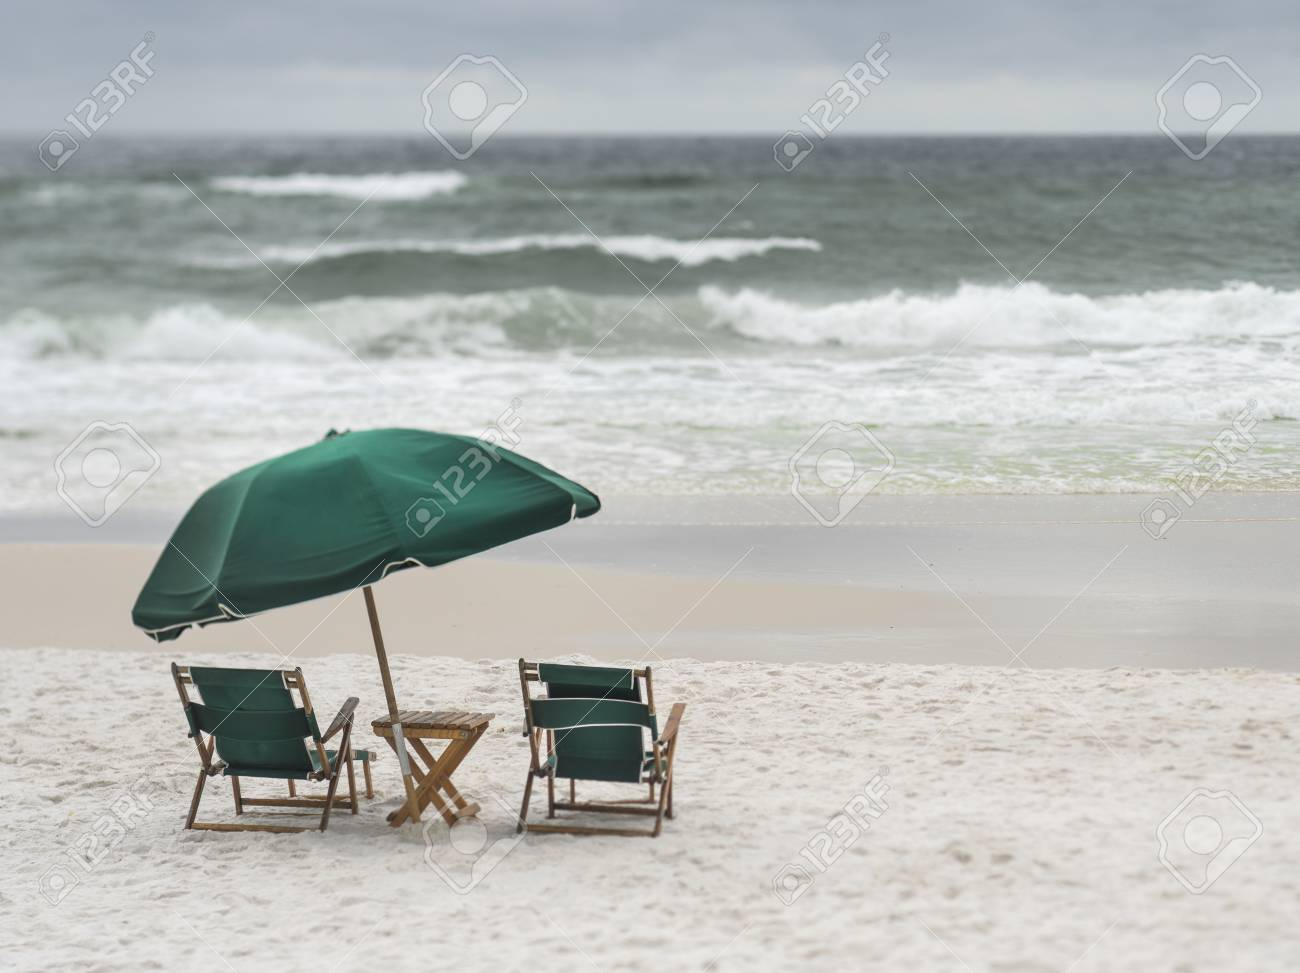 Beach Lounge Chairs 2 Vintage Wood And Canvas Beach Lounge Chairs And Umbrella On